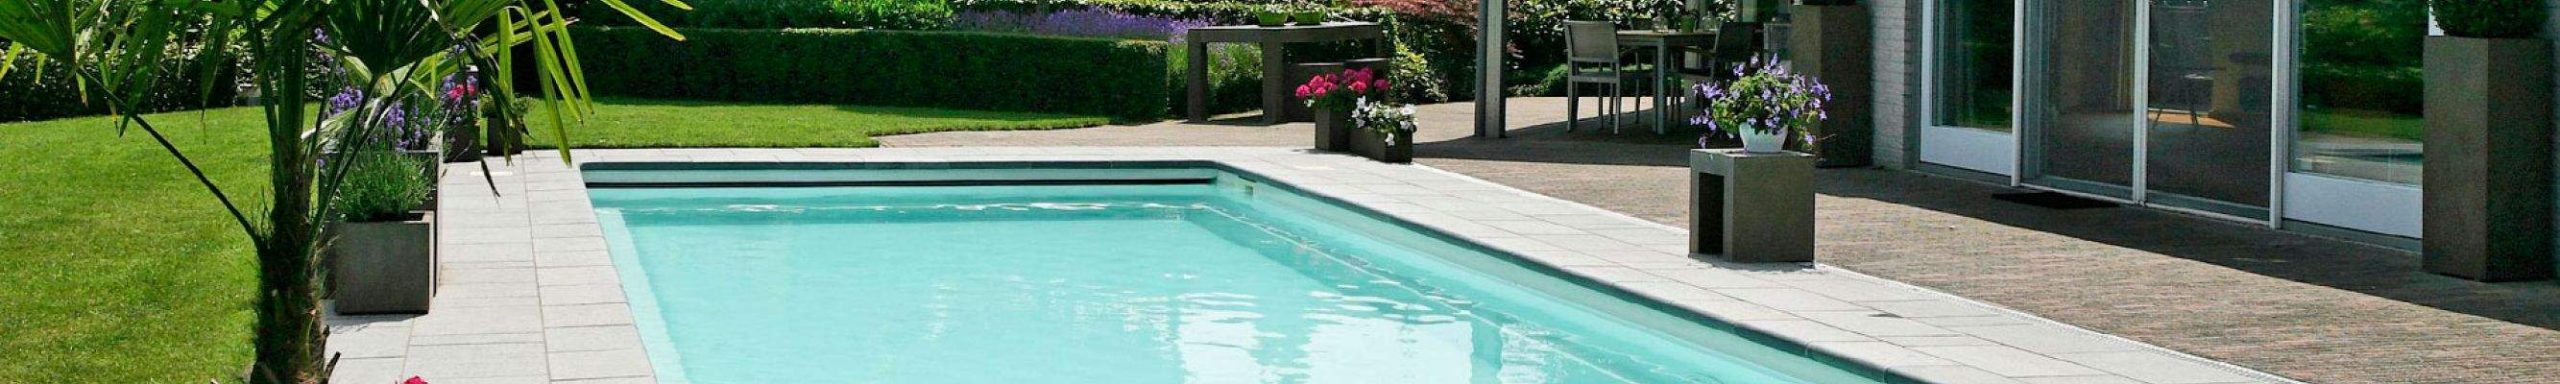 Was Kostet Ein Pool Im Garten Elegant Hanjo Group Hanjo Group Karlsruhe Pools Sauna Whirlpools